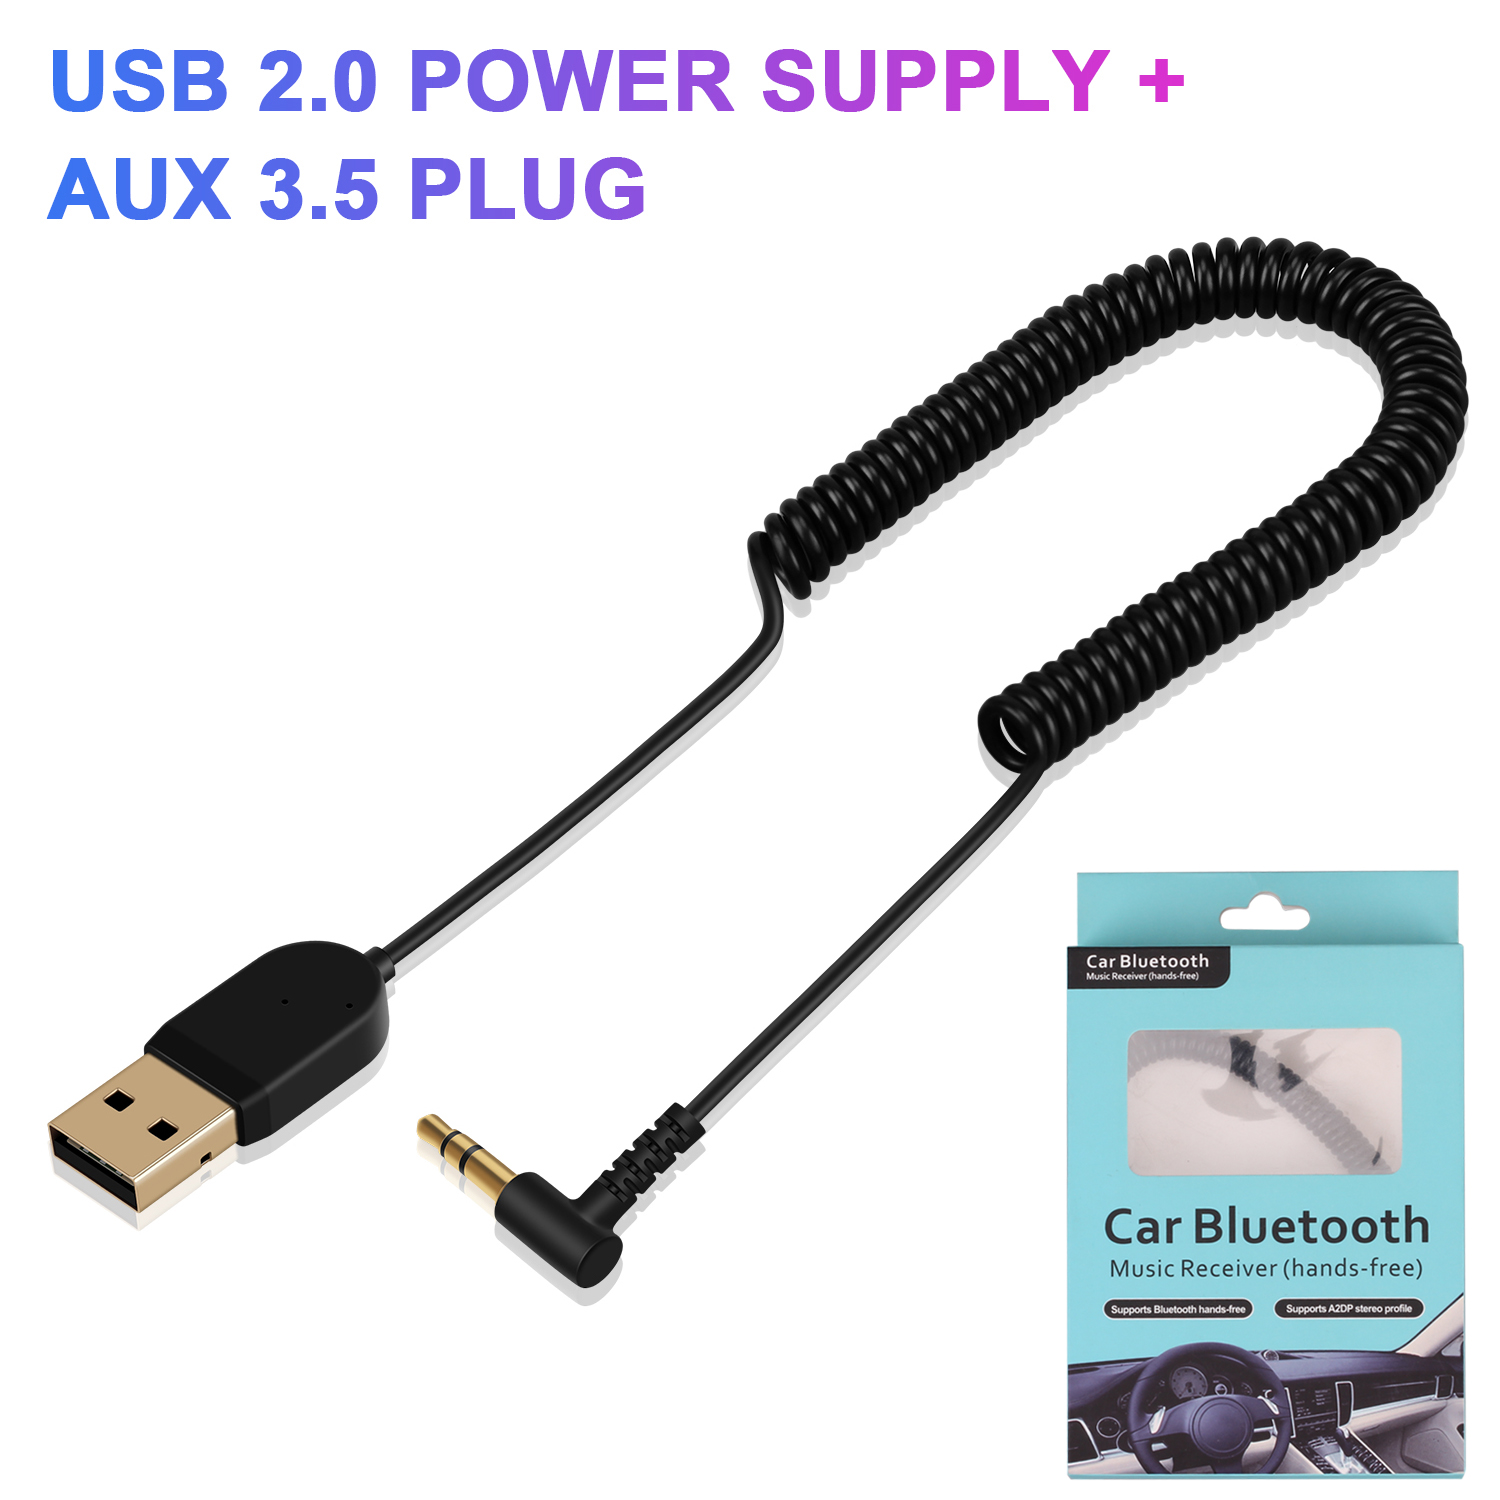 5.0 Bluetooth Adapter Mini USB 2.0 CSR Adjustable Receiver Adapter For Car Speaker AUX Interface Speaker with 3.5 Plug cable image